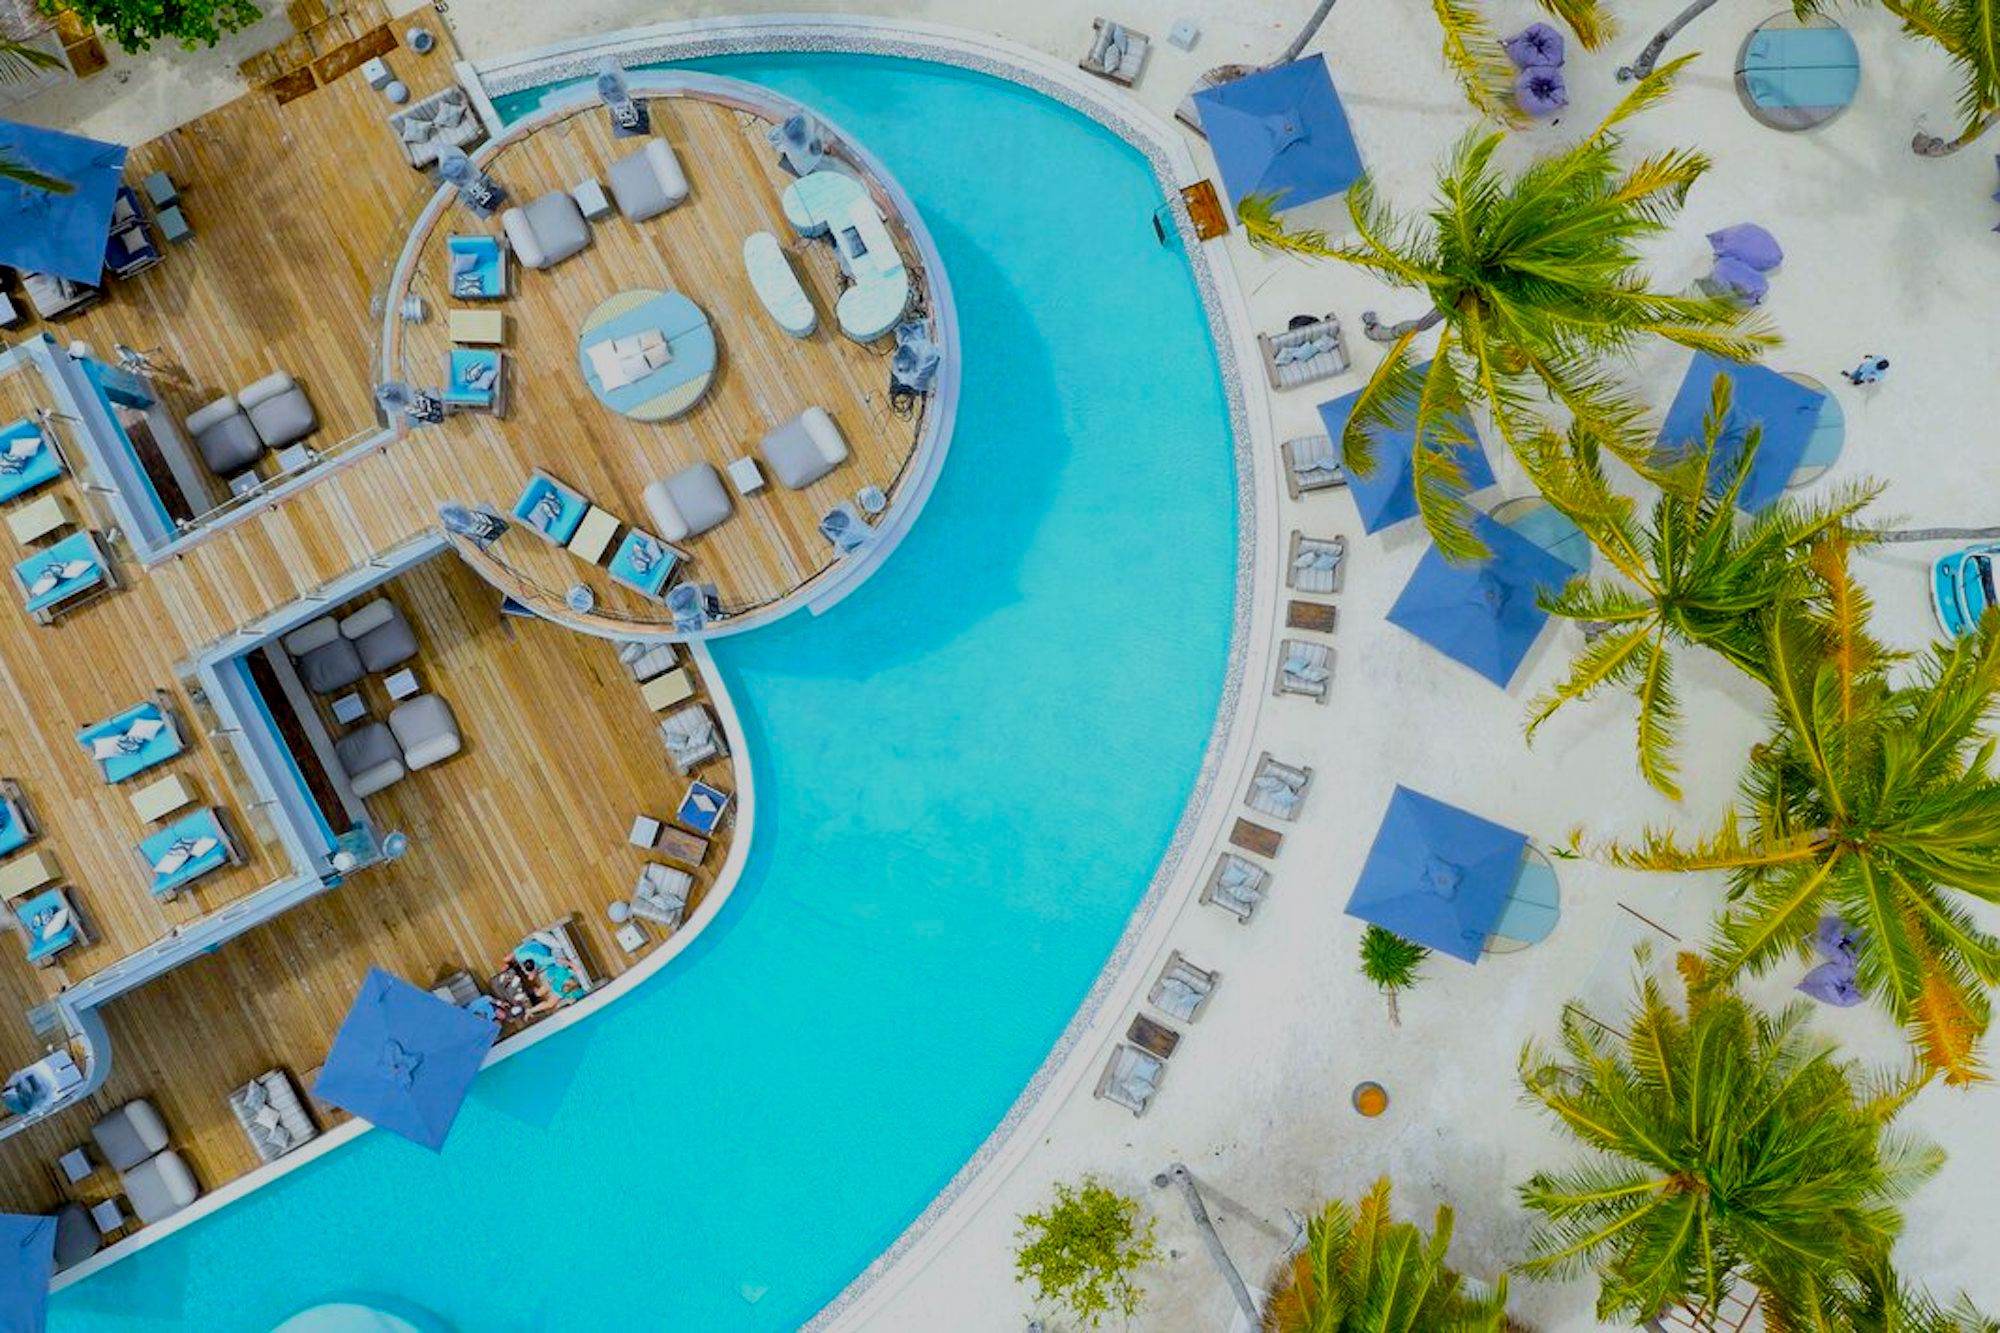 Finolhu – Glam and Groovy in the Maldives